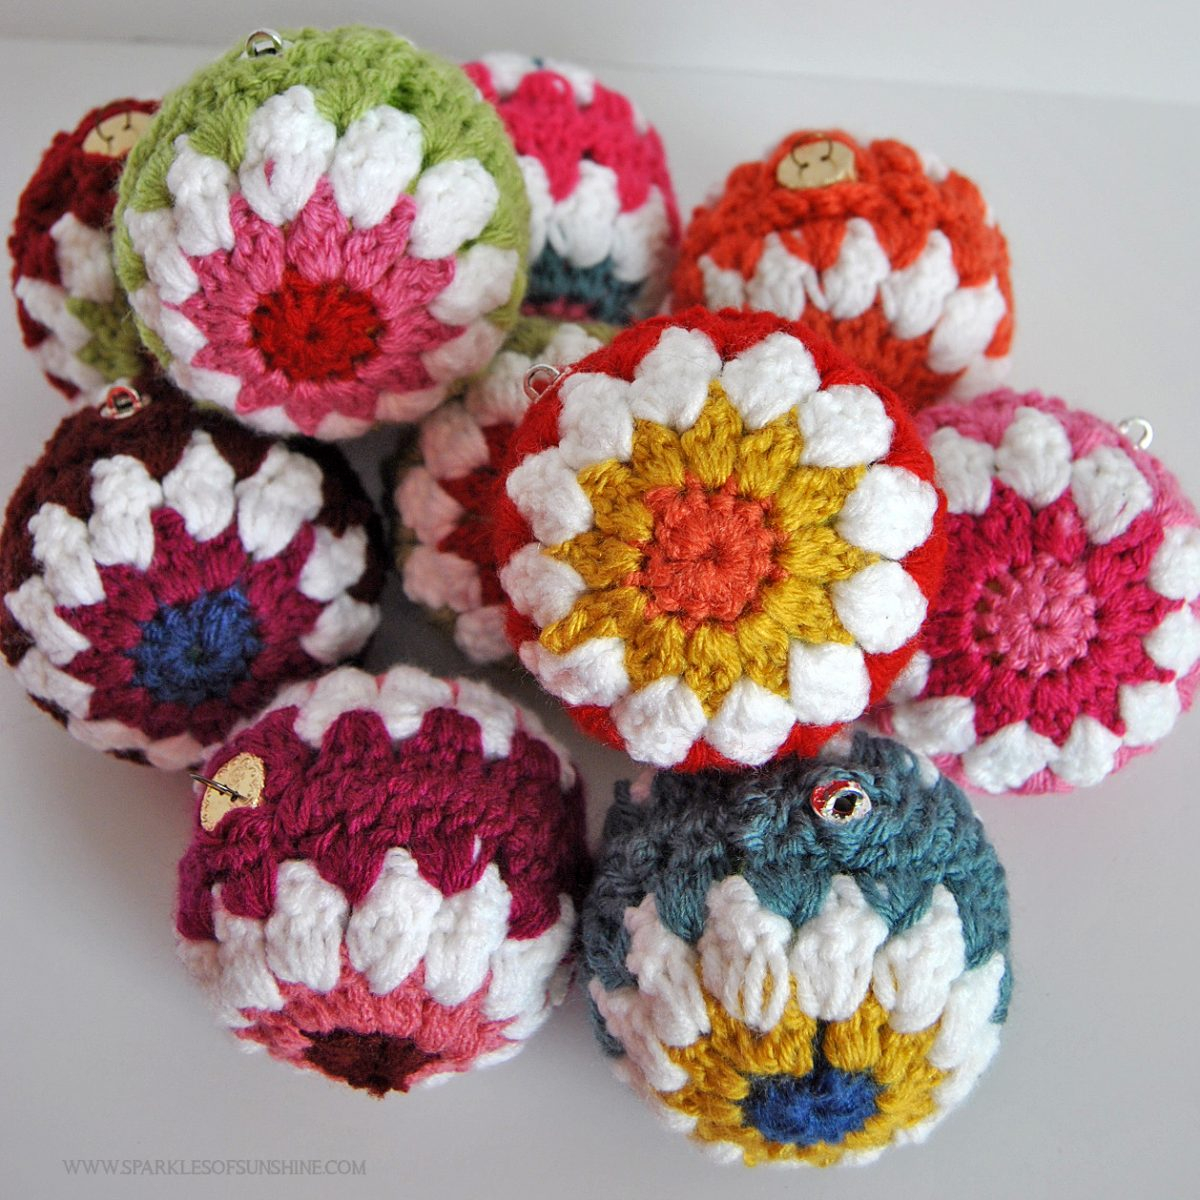 Crochet Ball Pattern Crocheted Christmas Ball Ornaments Free Pattern Sparkles Of Sunshine